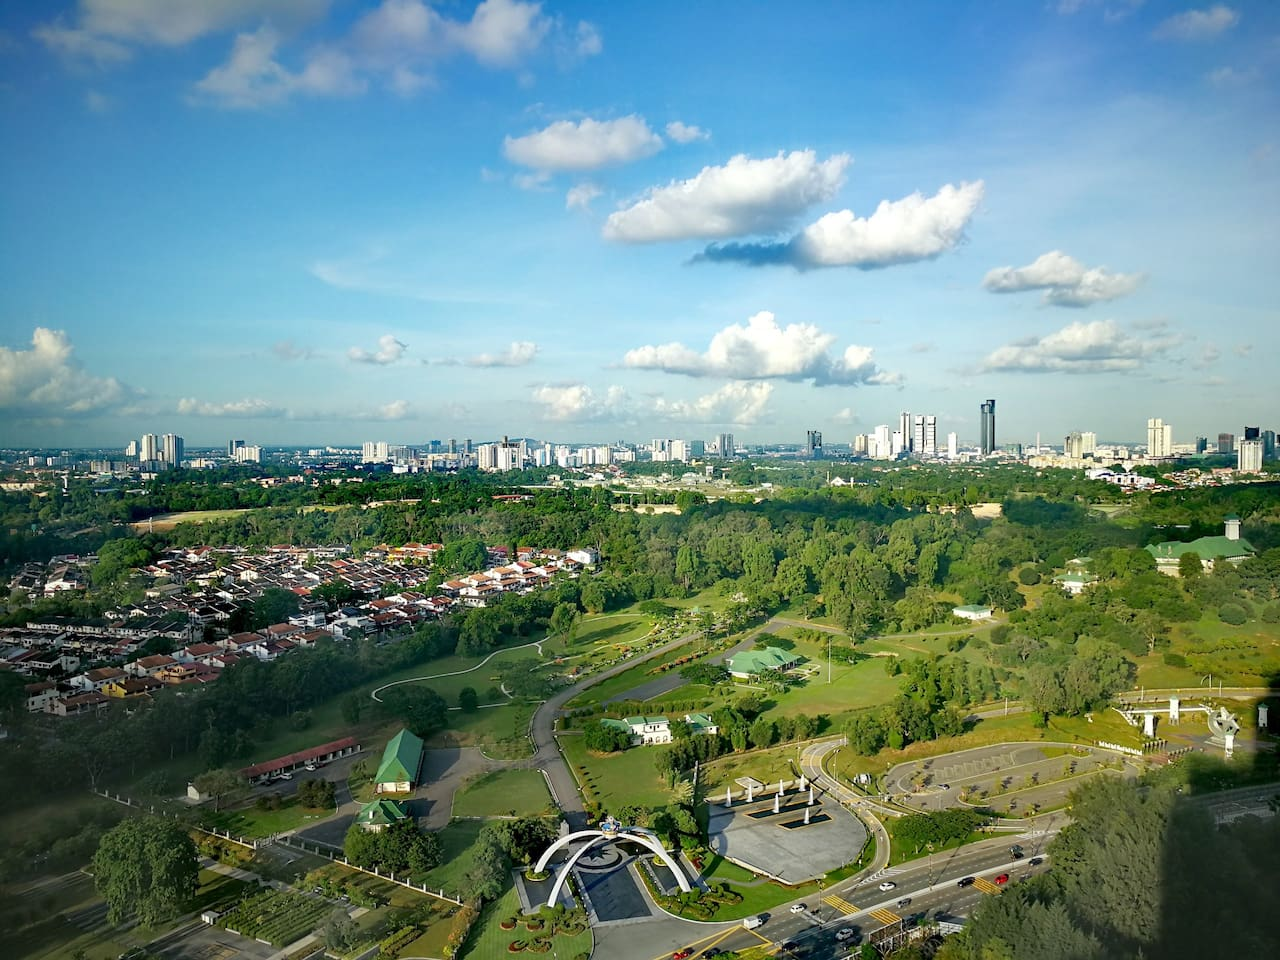 One of the most beautiful panorama view of JB City at level 35